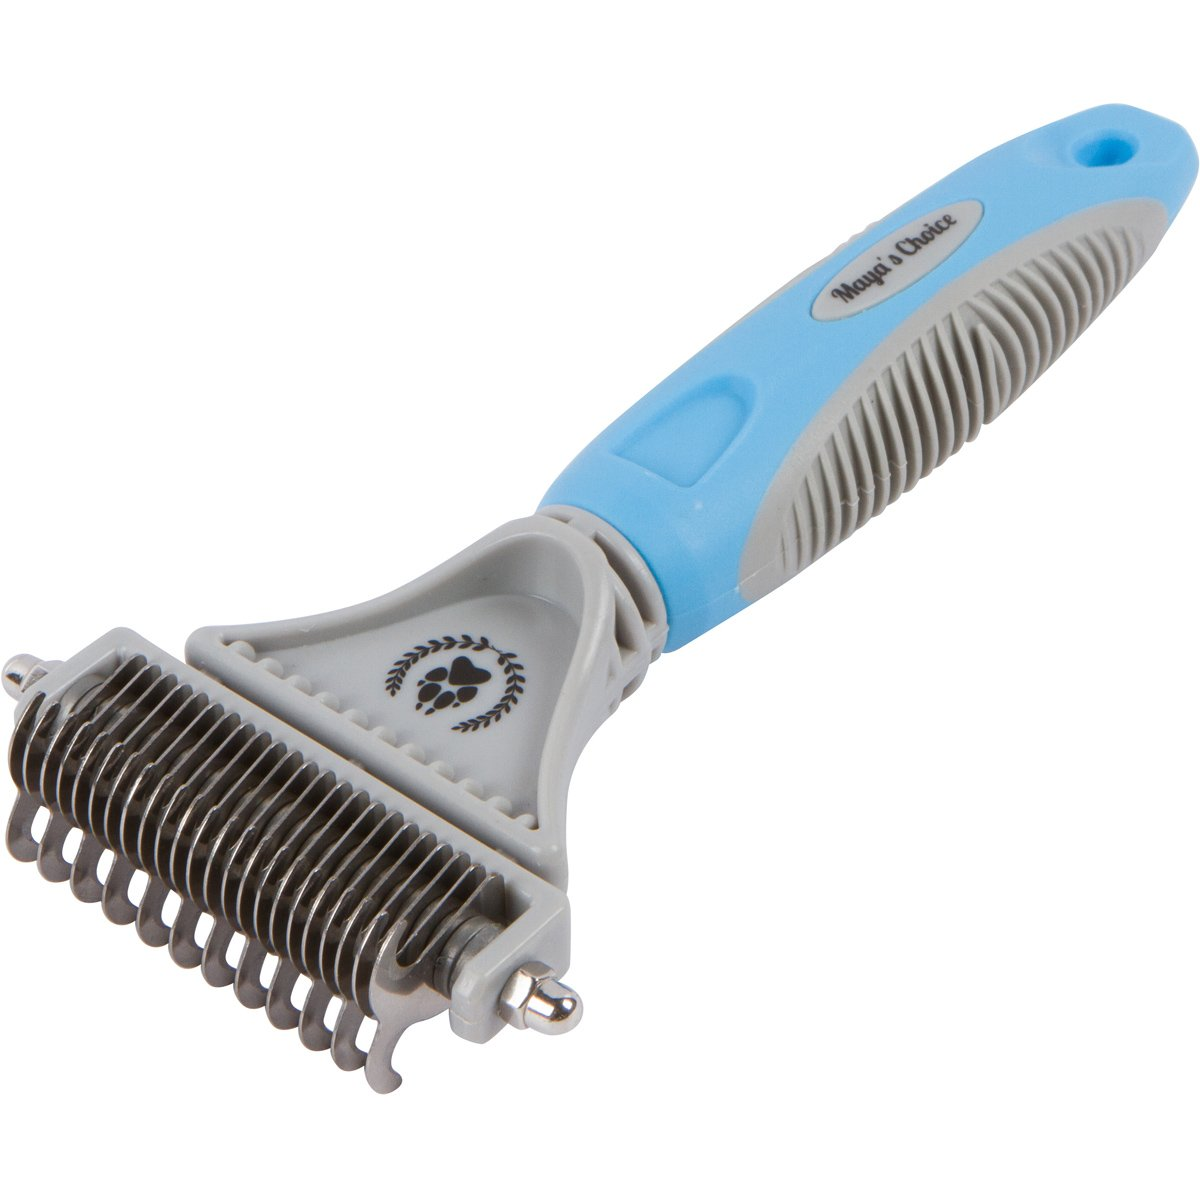 Ultimate Dog Dematting Comb - DIY Grooming Tool for Small Dogs, Large Dogs, and Cats by Maya's Choice